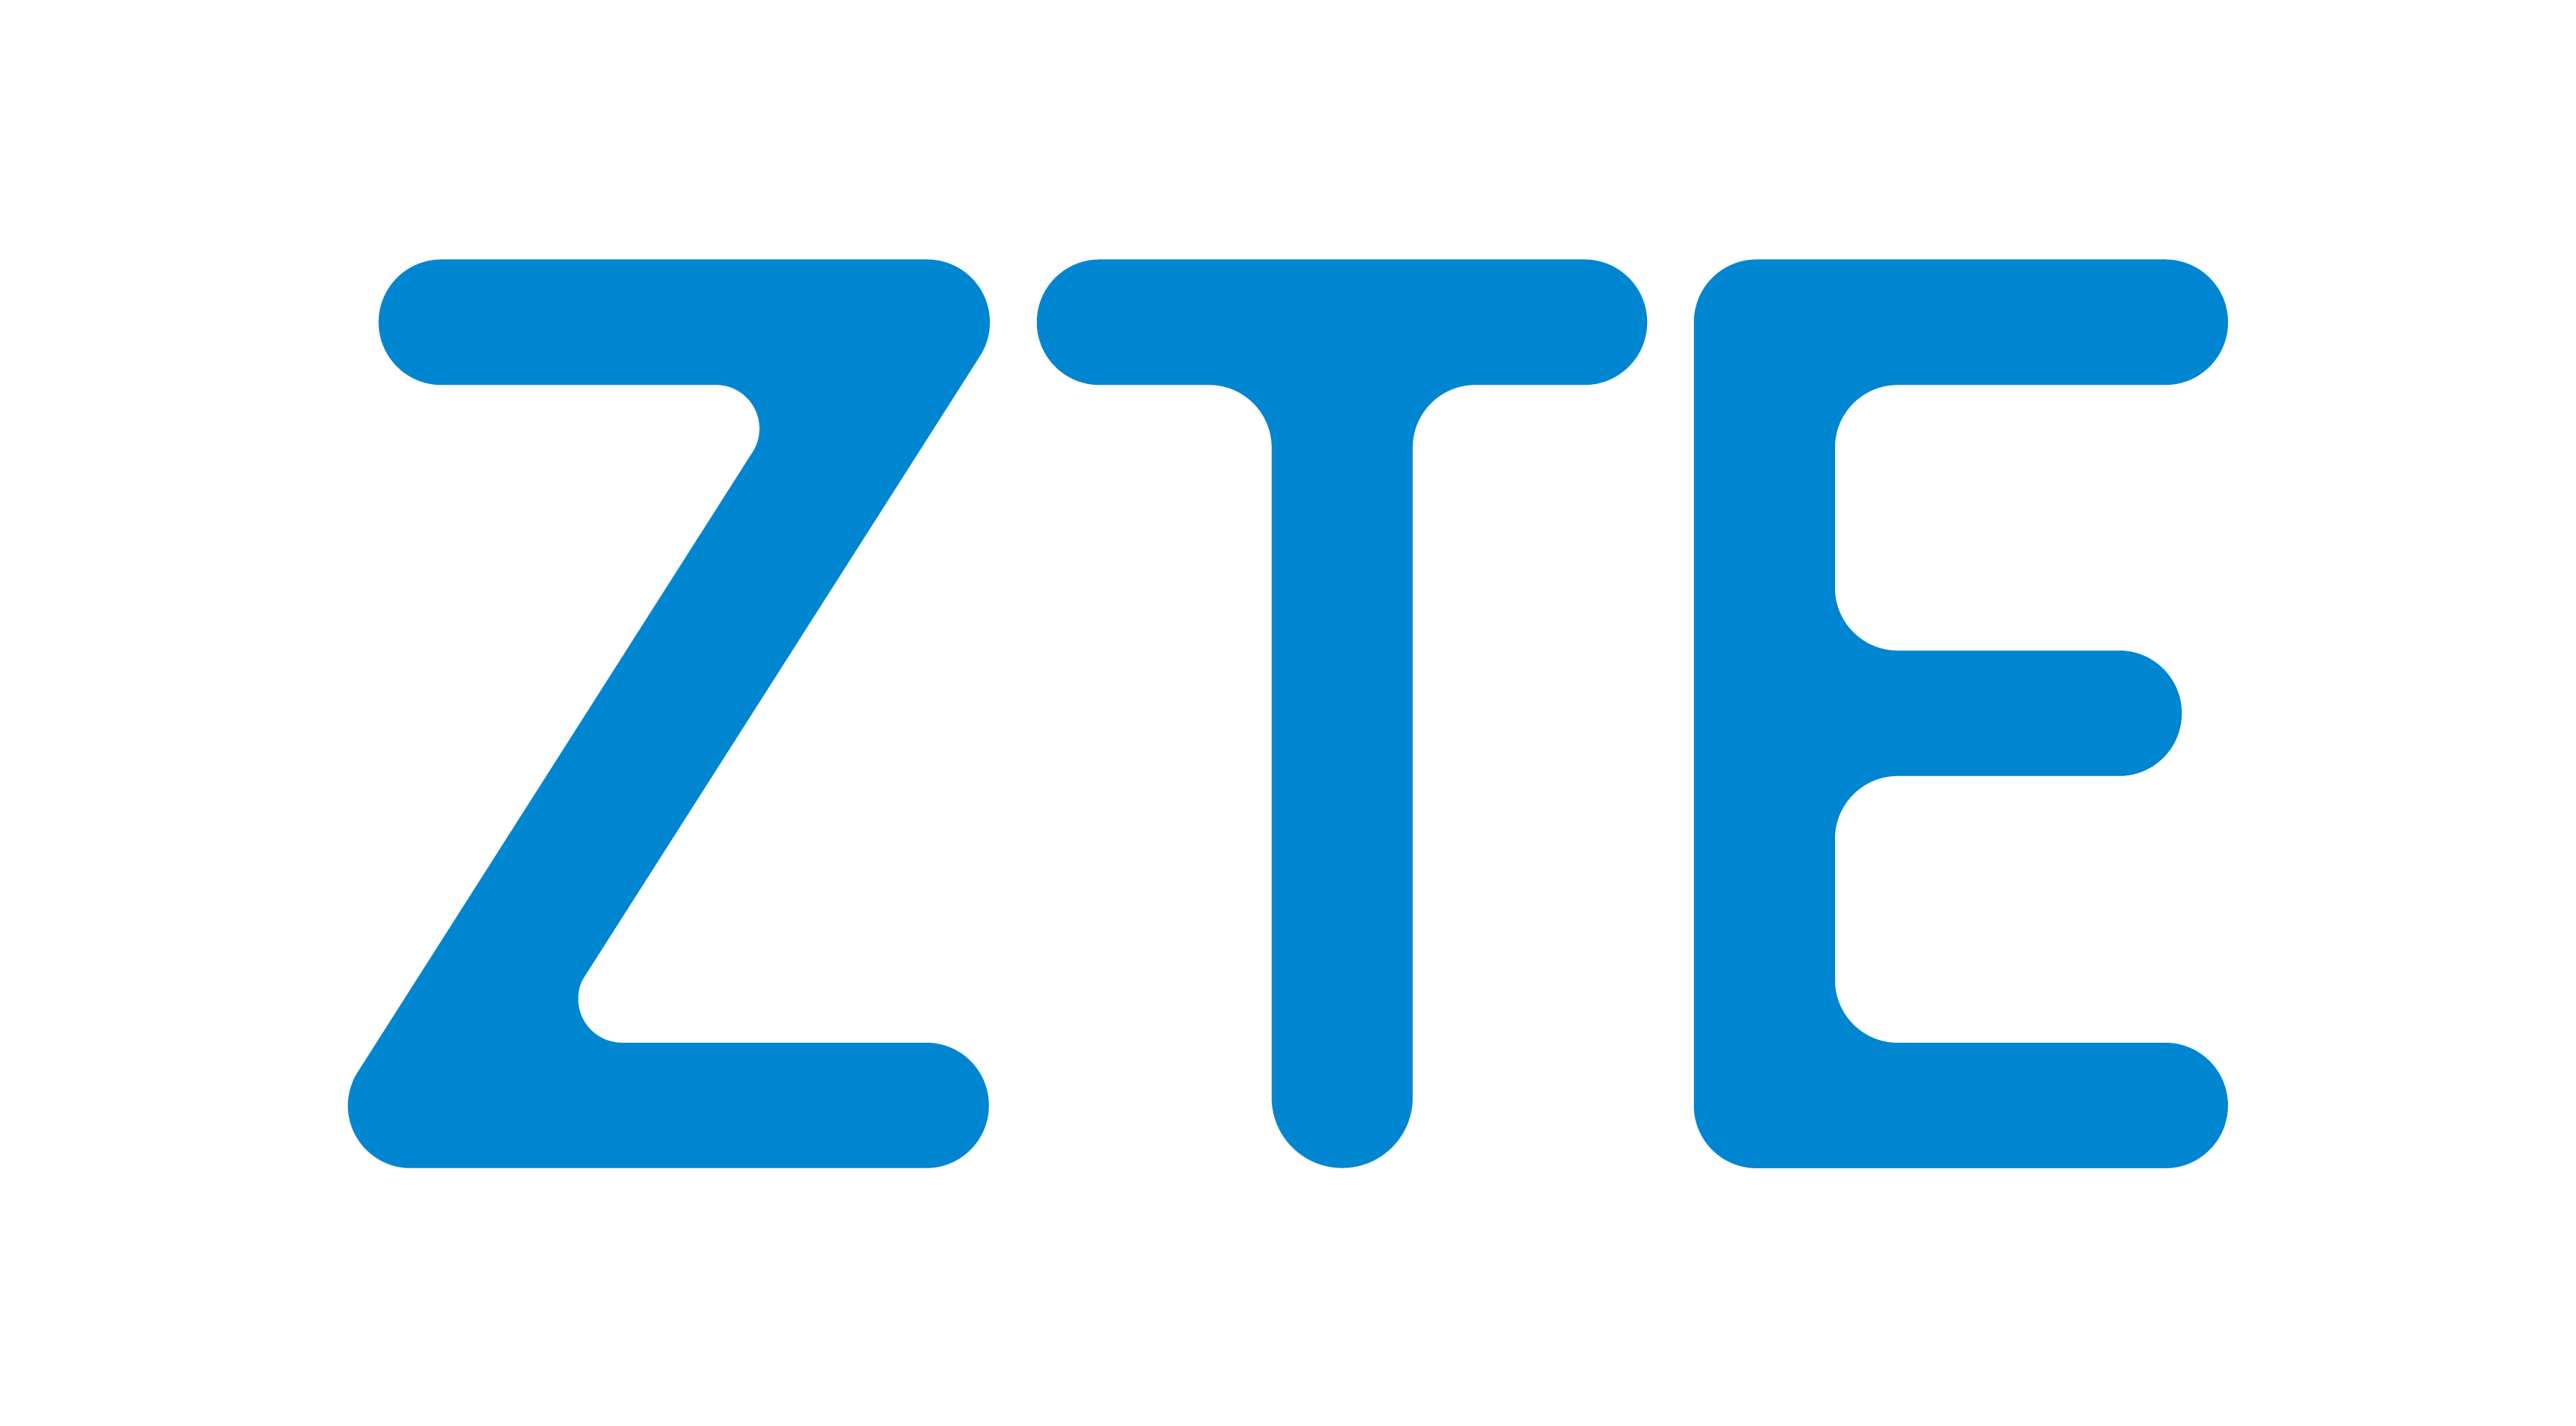 Zte Logo Png Hitachi Data Sy...